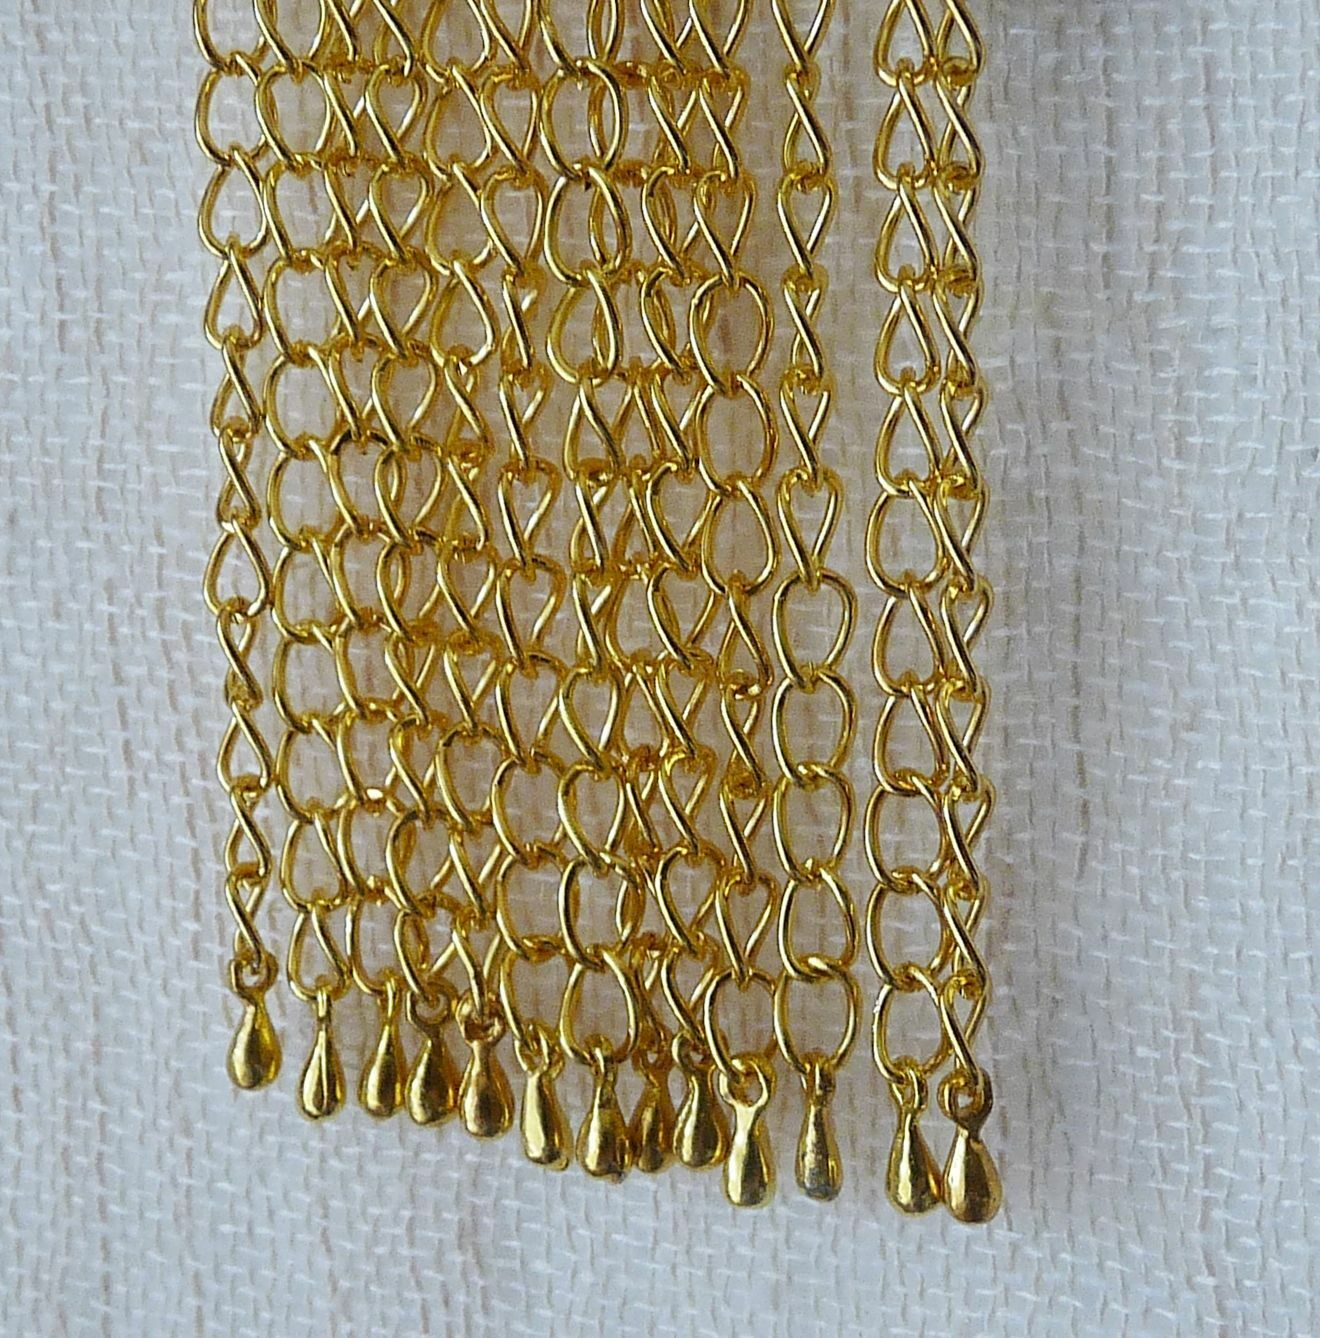 10x Necklace Tail Extender Chain Bracelet Extension With